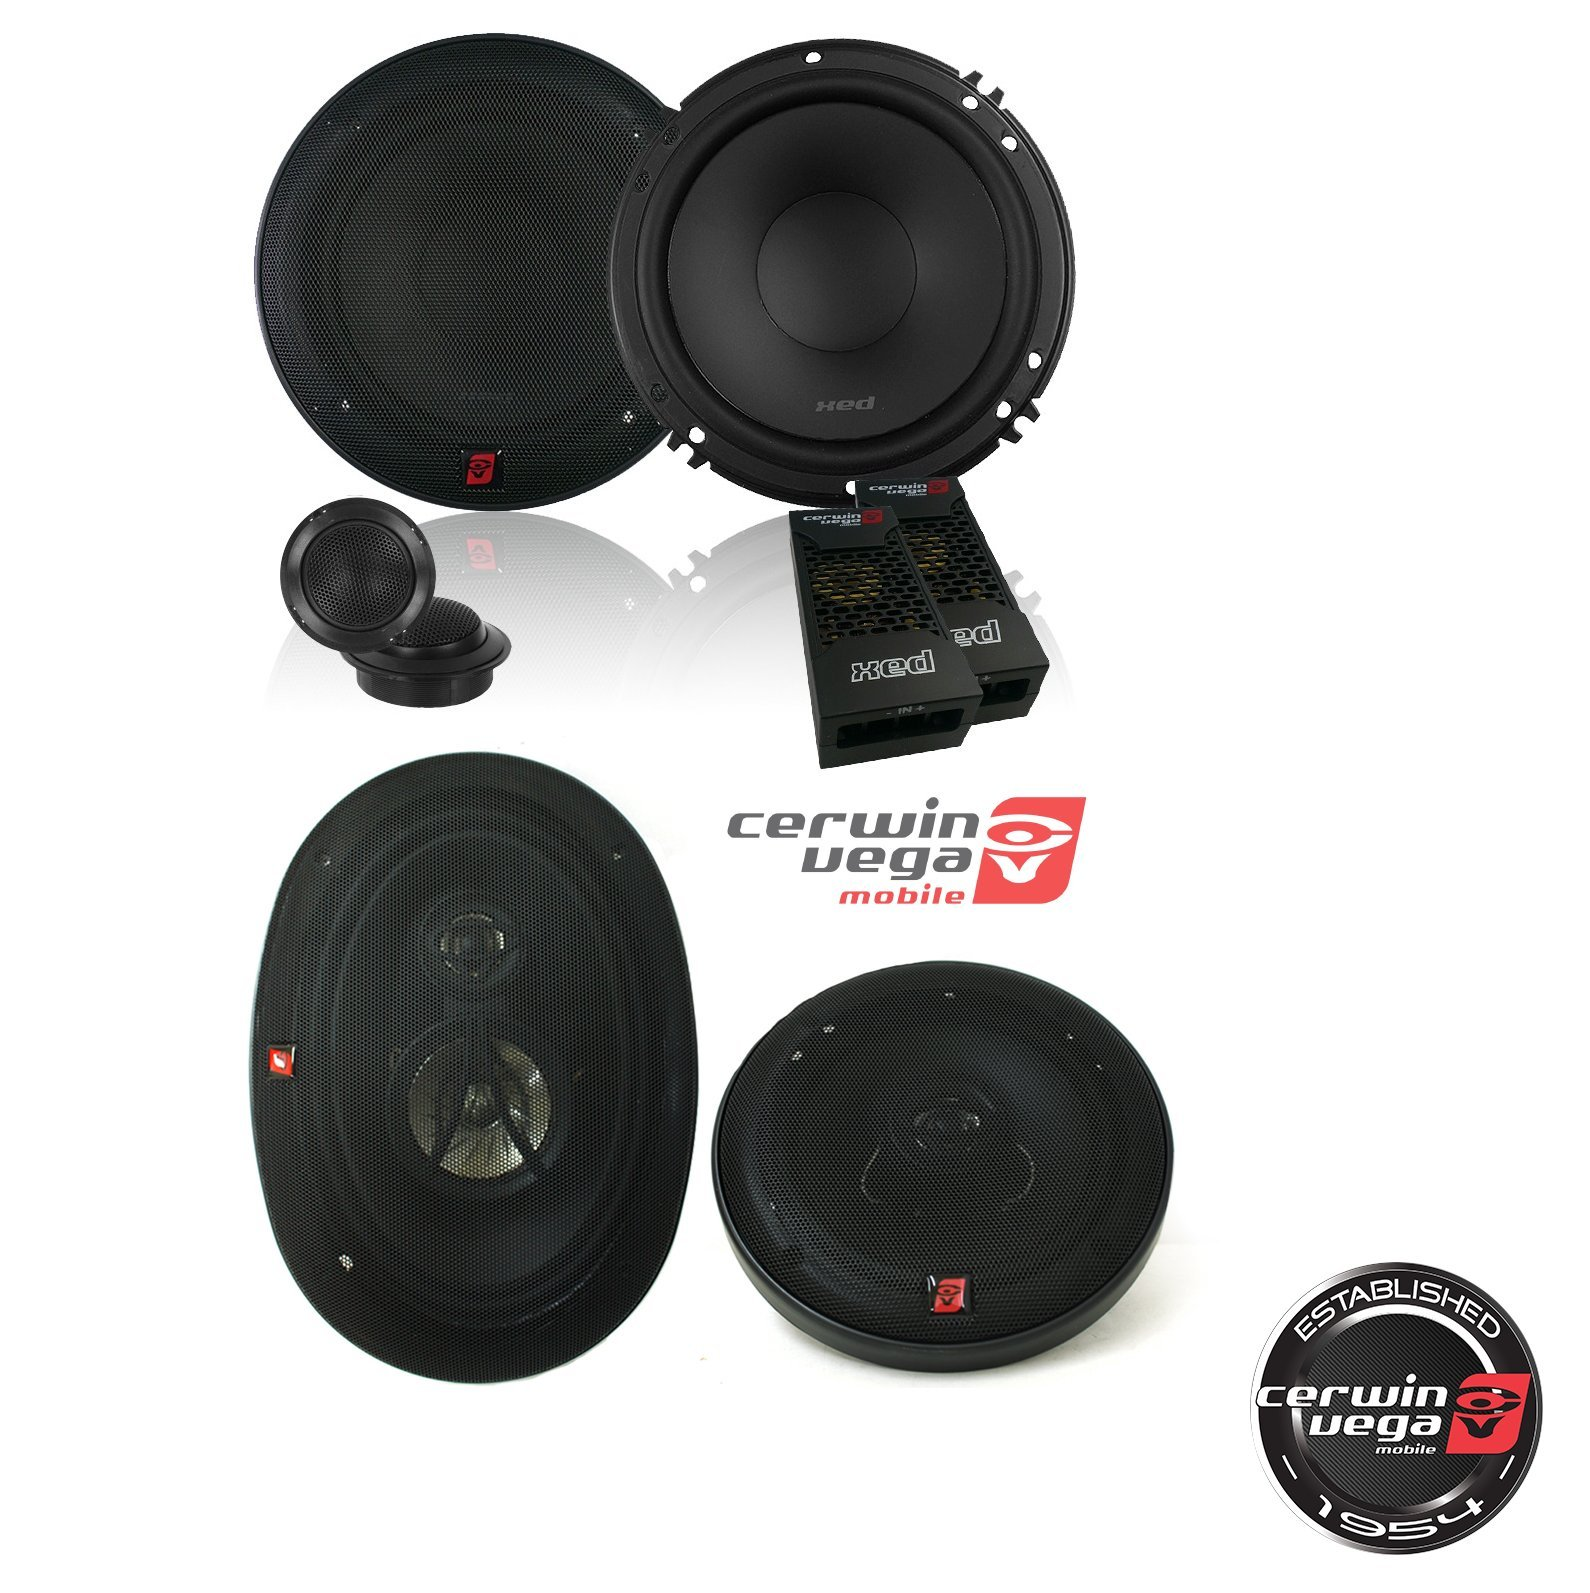 "CERWIN VEGA XED650C 6.5-Inch 300 Watts Max 2-Way Component Speaker Set W/ Cerwin-Vega XED693 350W 6 x 9"" 3-Way Coaxial Speakers"